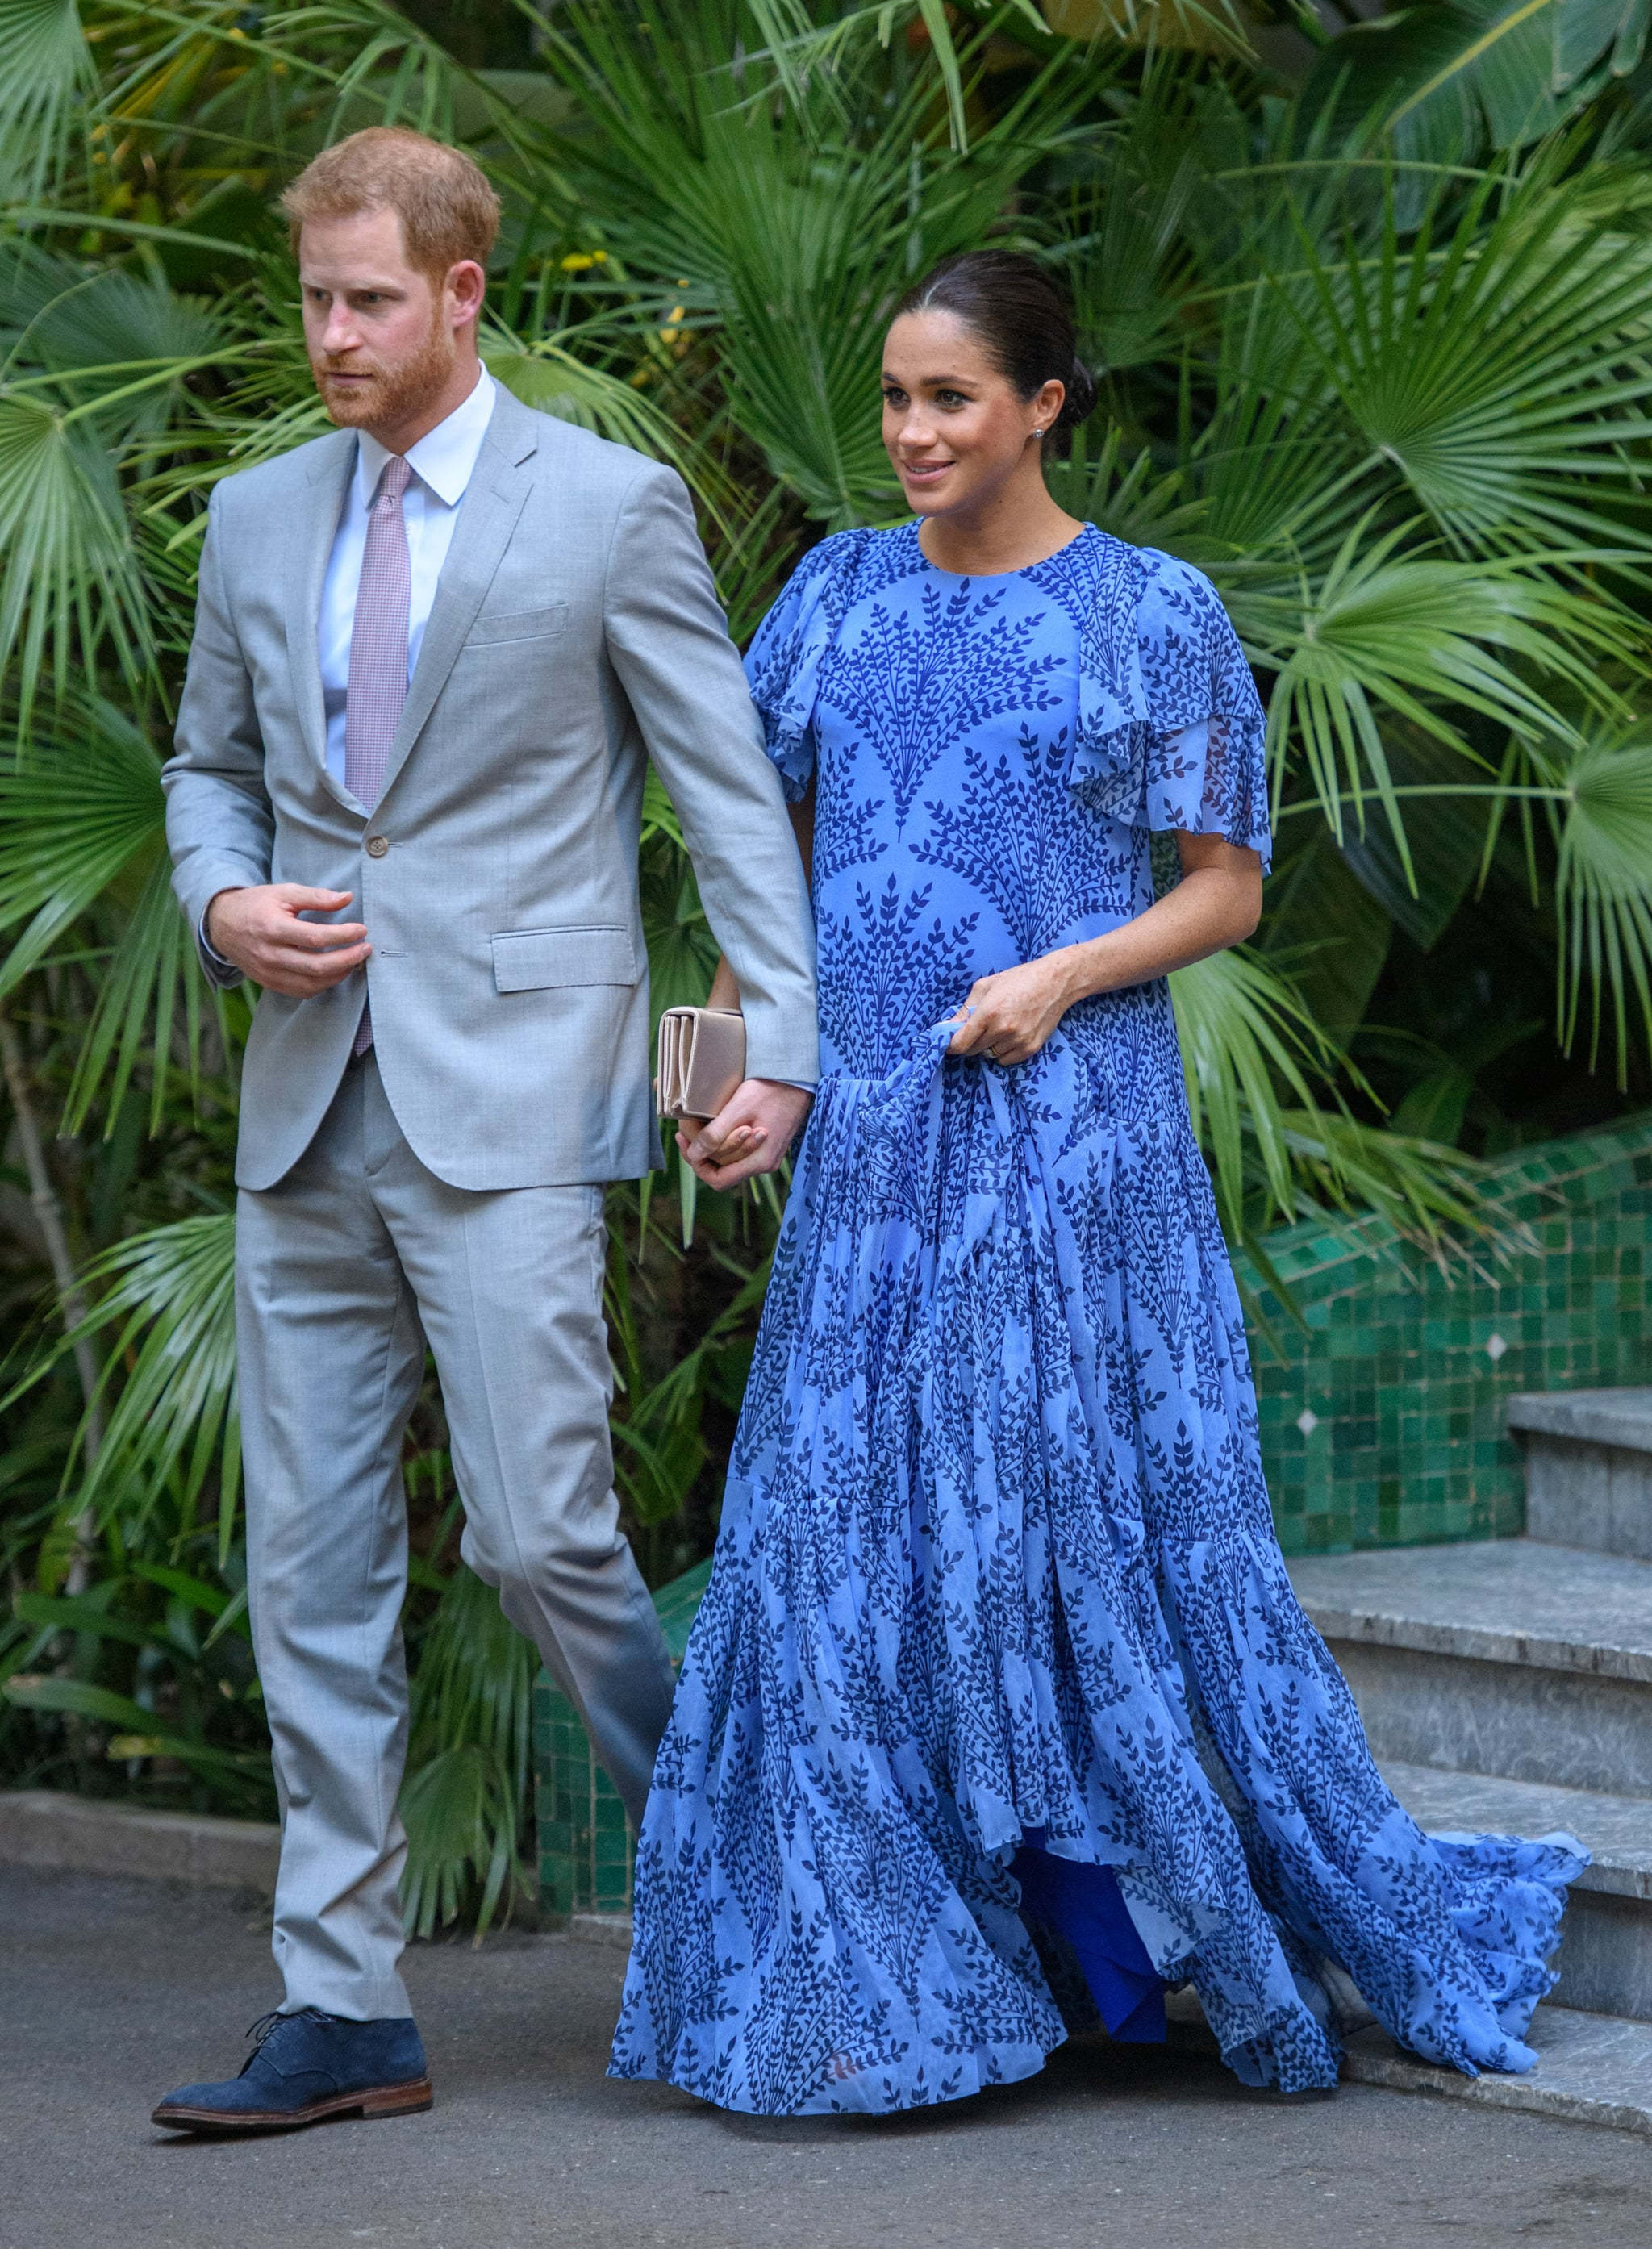 RABAT, MOROCCO - FEBRUARY 25: (UK OUT FOR 28 DAYS) Prince Harry, Duke of Sussex and Meghan, Duchess of Sussex with King Mohammed VI of Morocco, during an audience at his residence on February 25, 2019 in Rabat, Morocco.  (Photo by Pool/Samir Hussein/WireImage)